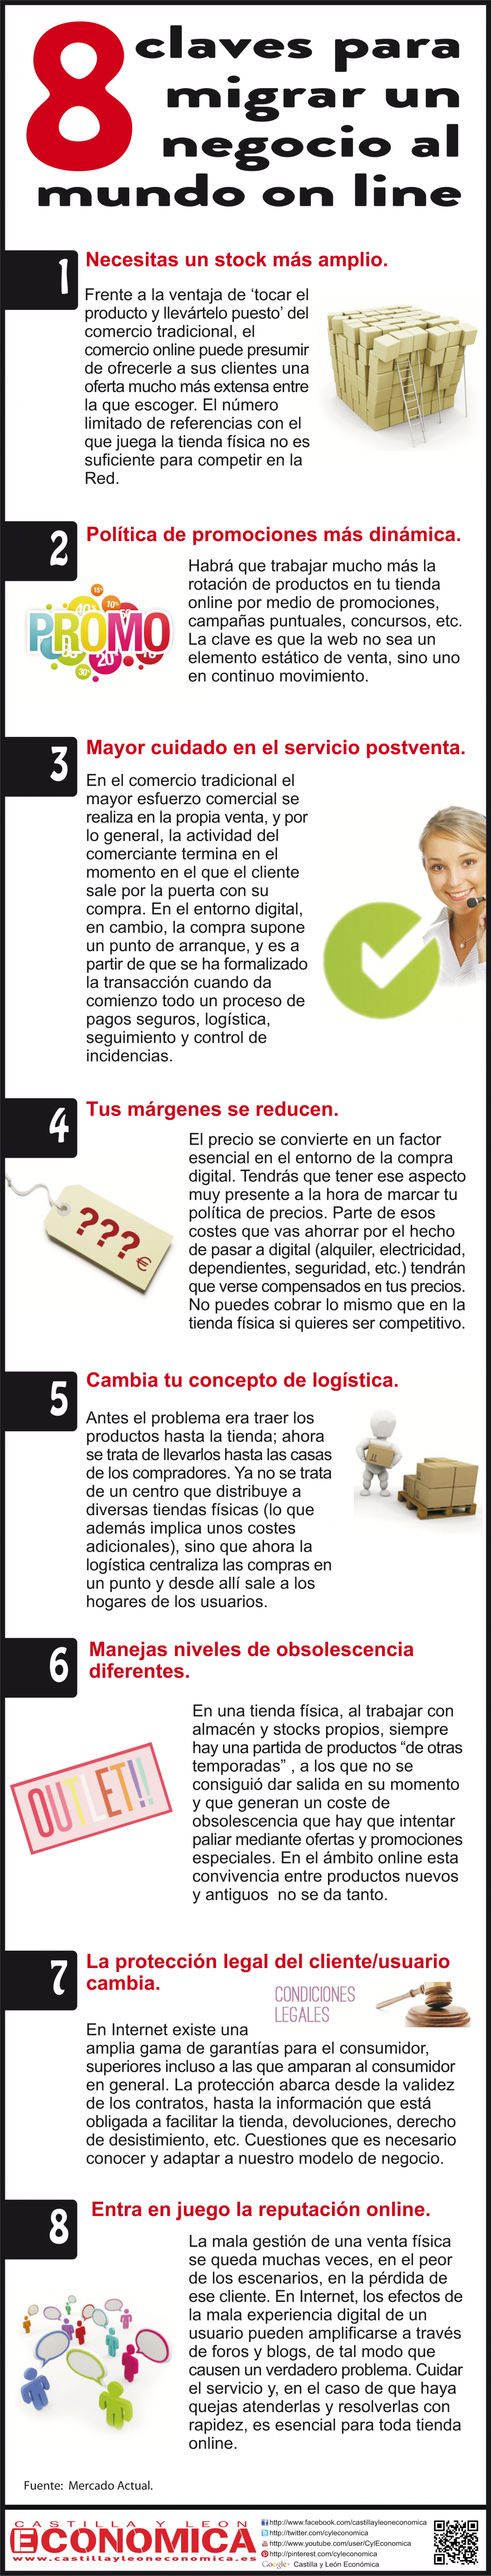 8 claves para migrar tu negocio al mundo 'on line' Infographic